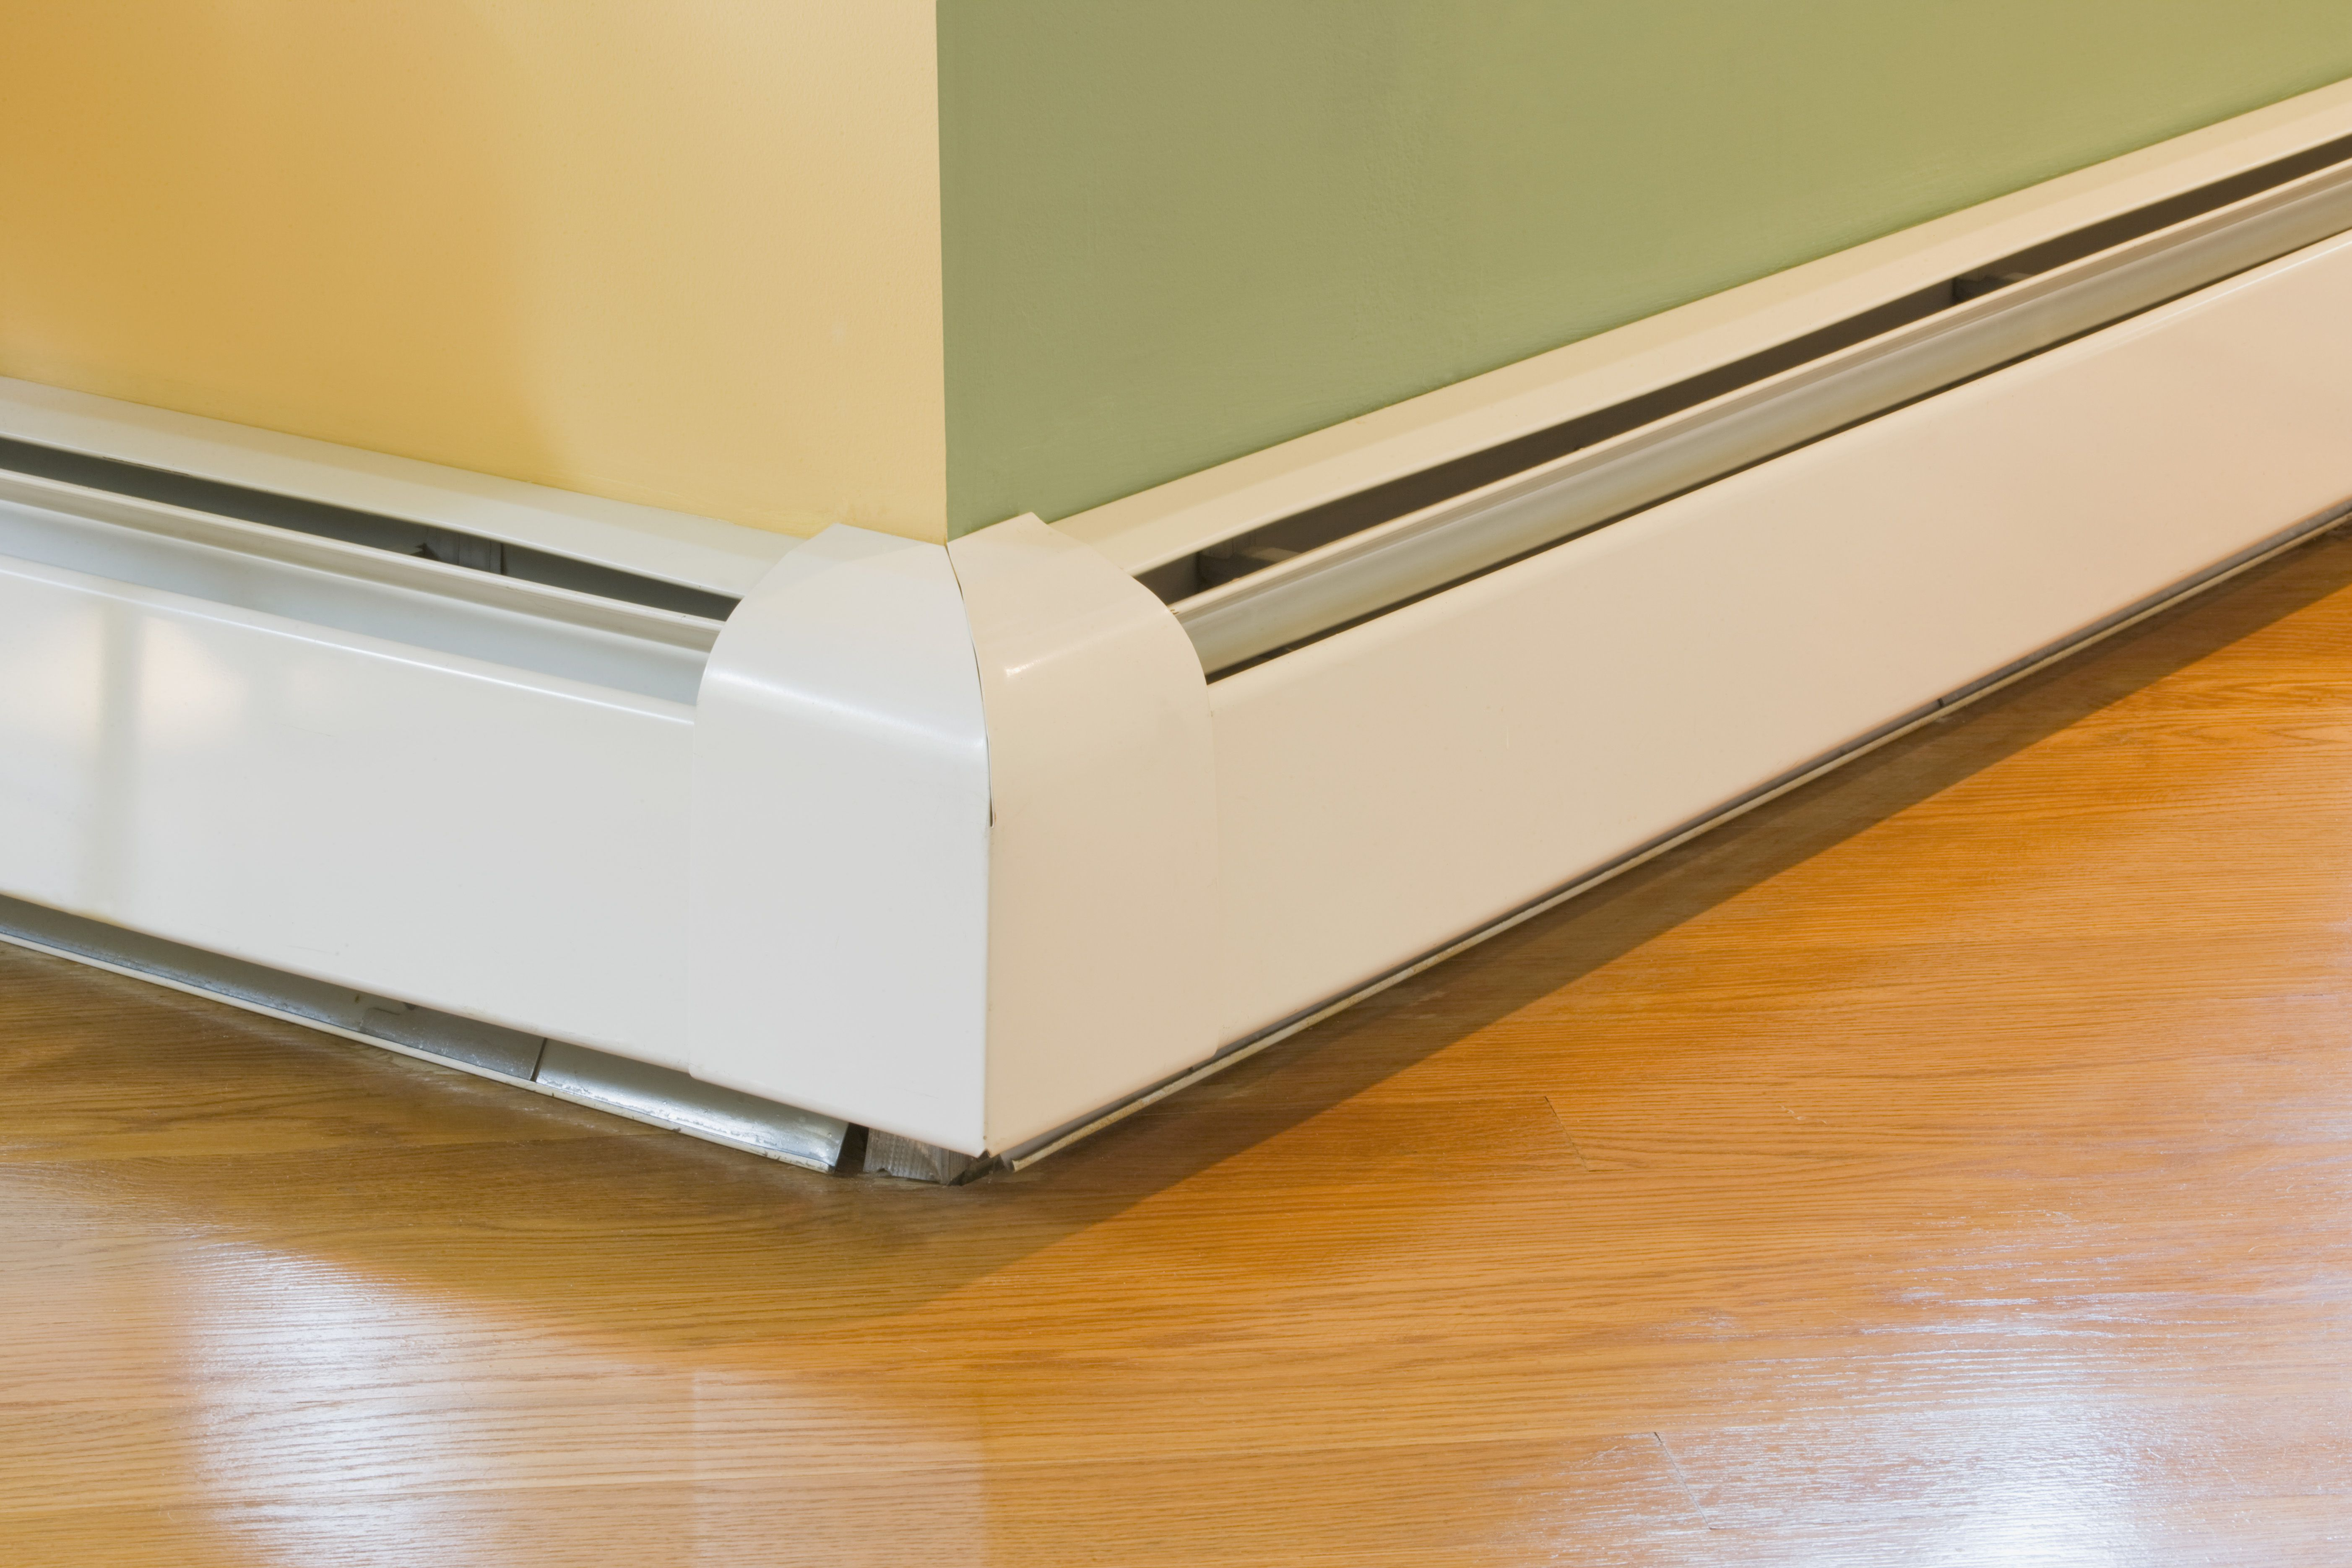 ratliff tag srvice floor mycomfortexperts pool hartford heaters heater woodfloor from